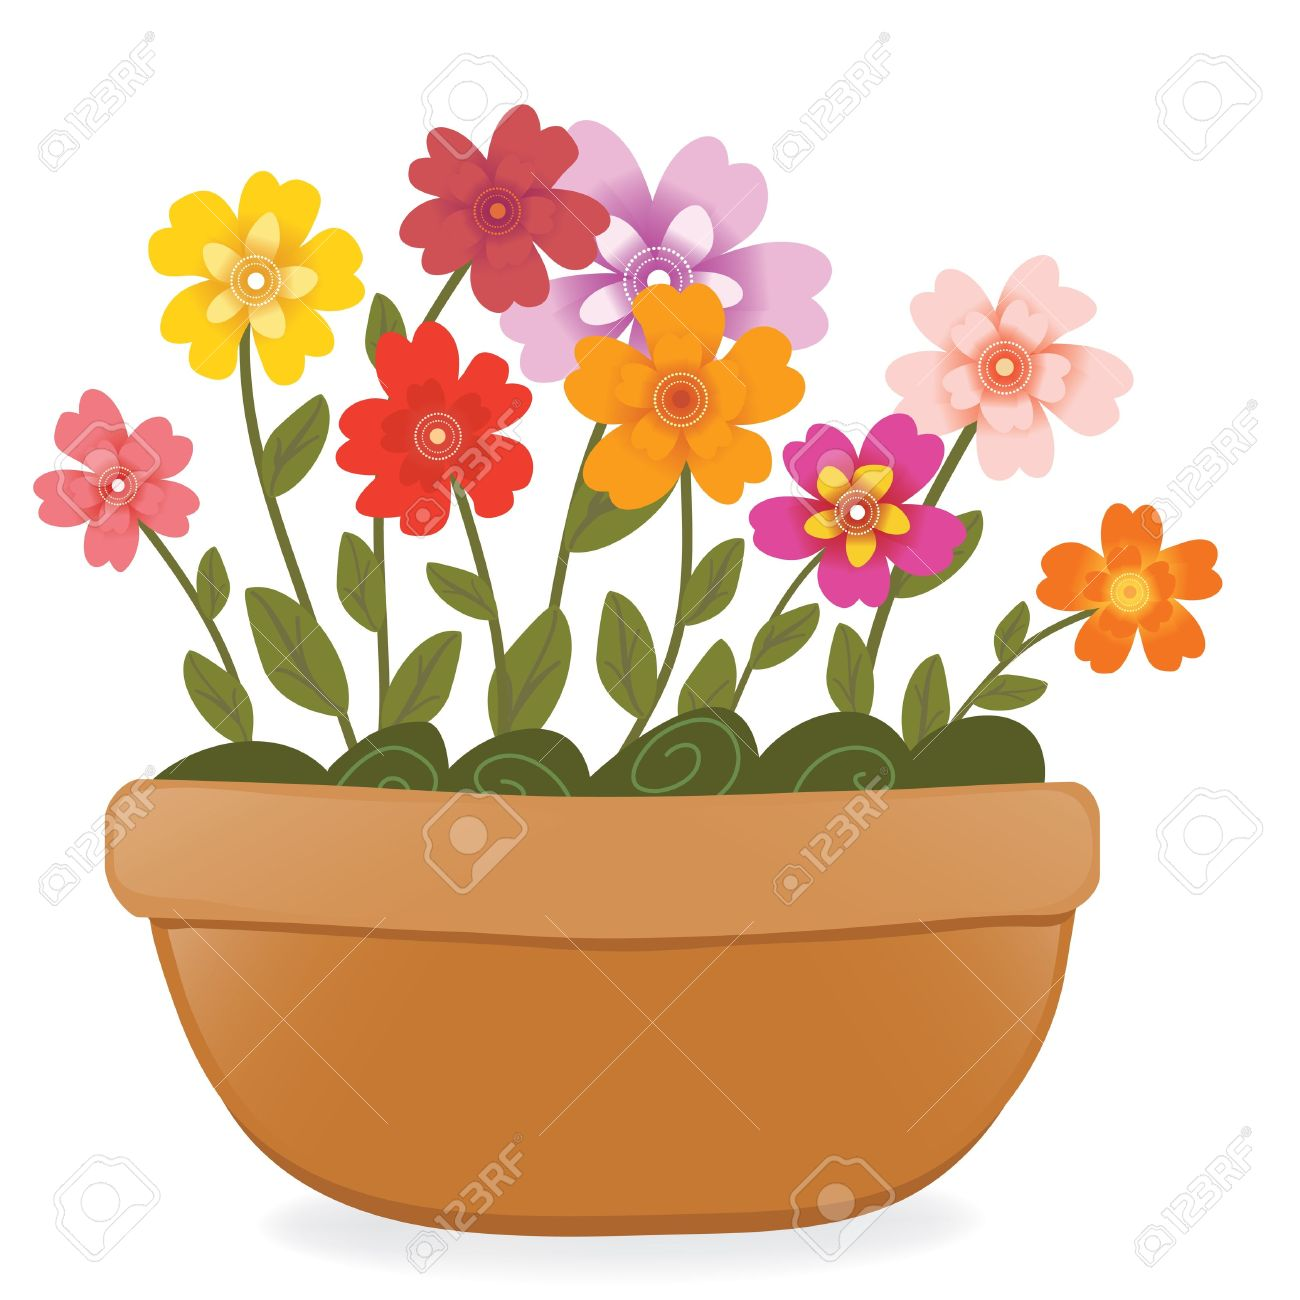 4,299 Potted Plant Cliparts, Stock Vector And Royalty Free Potted.